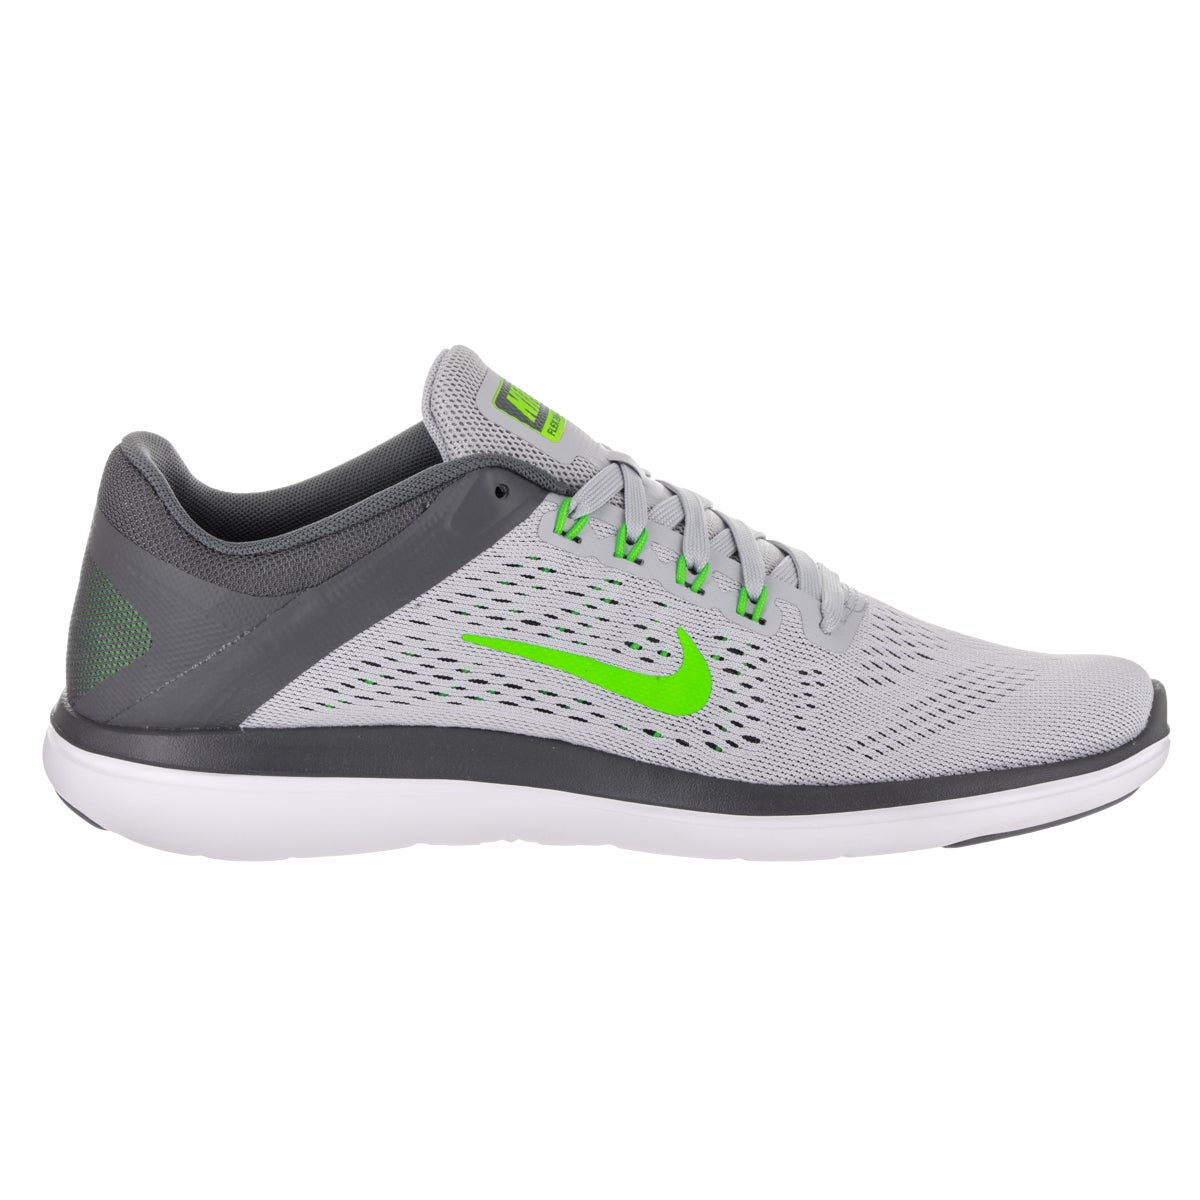 a95671fb125947 Shop Nike Men s Flex Run 2016 Wolf Grey Synthetic Leather Running Shoes -  Free Shipping Today - Overstock.com - 13831147